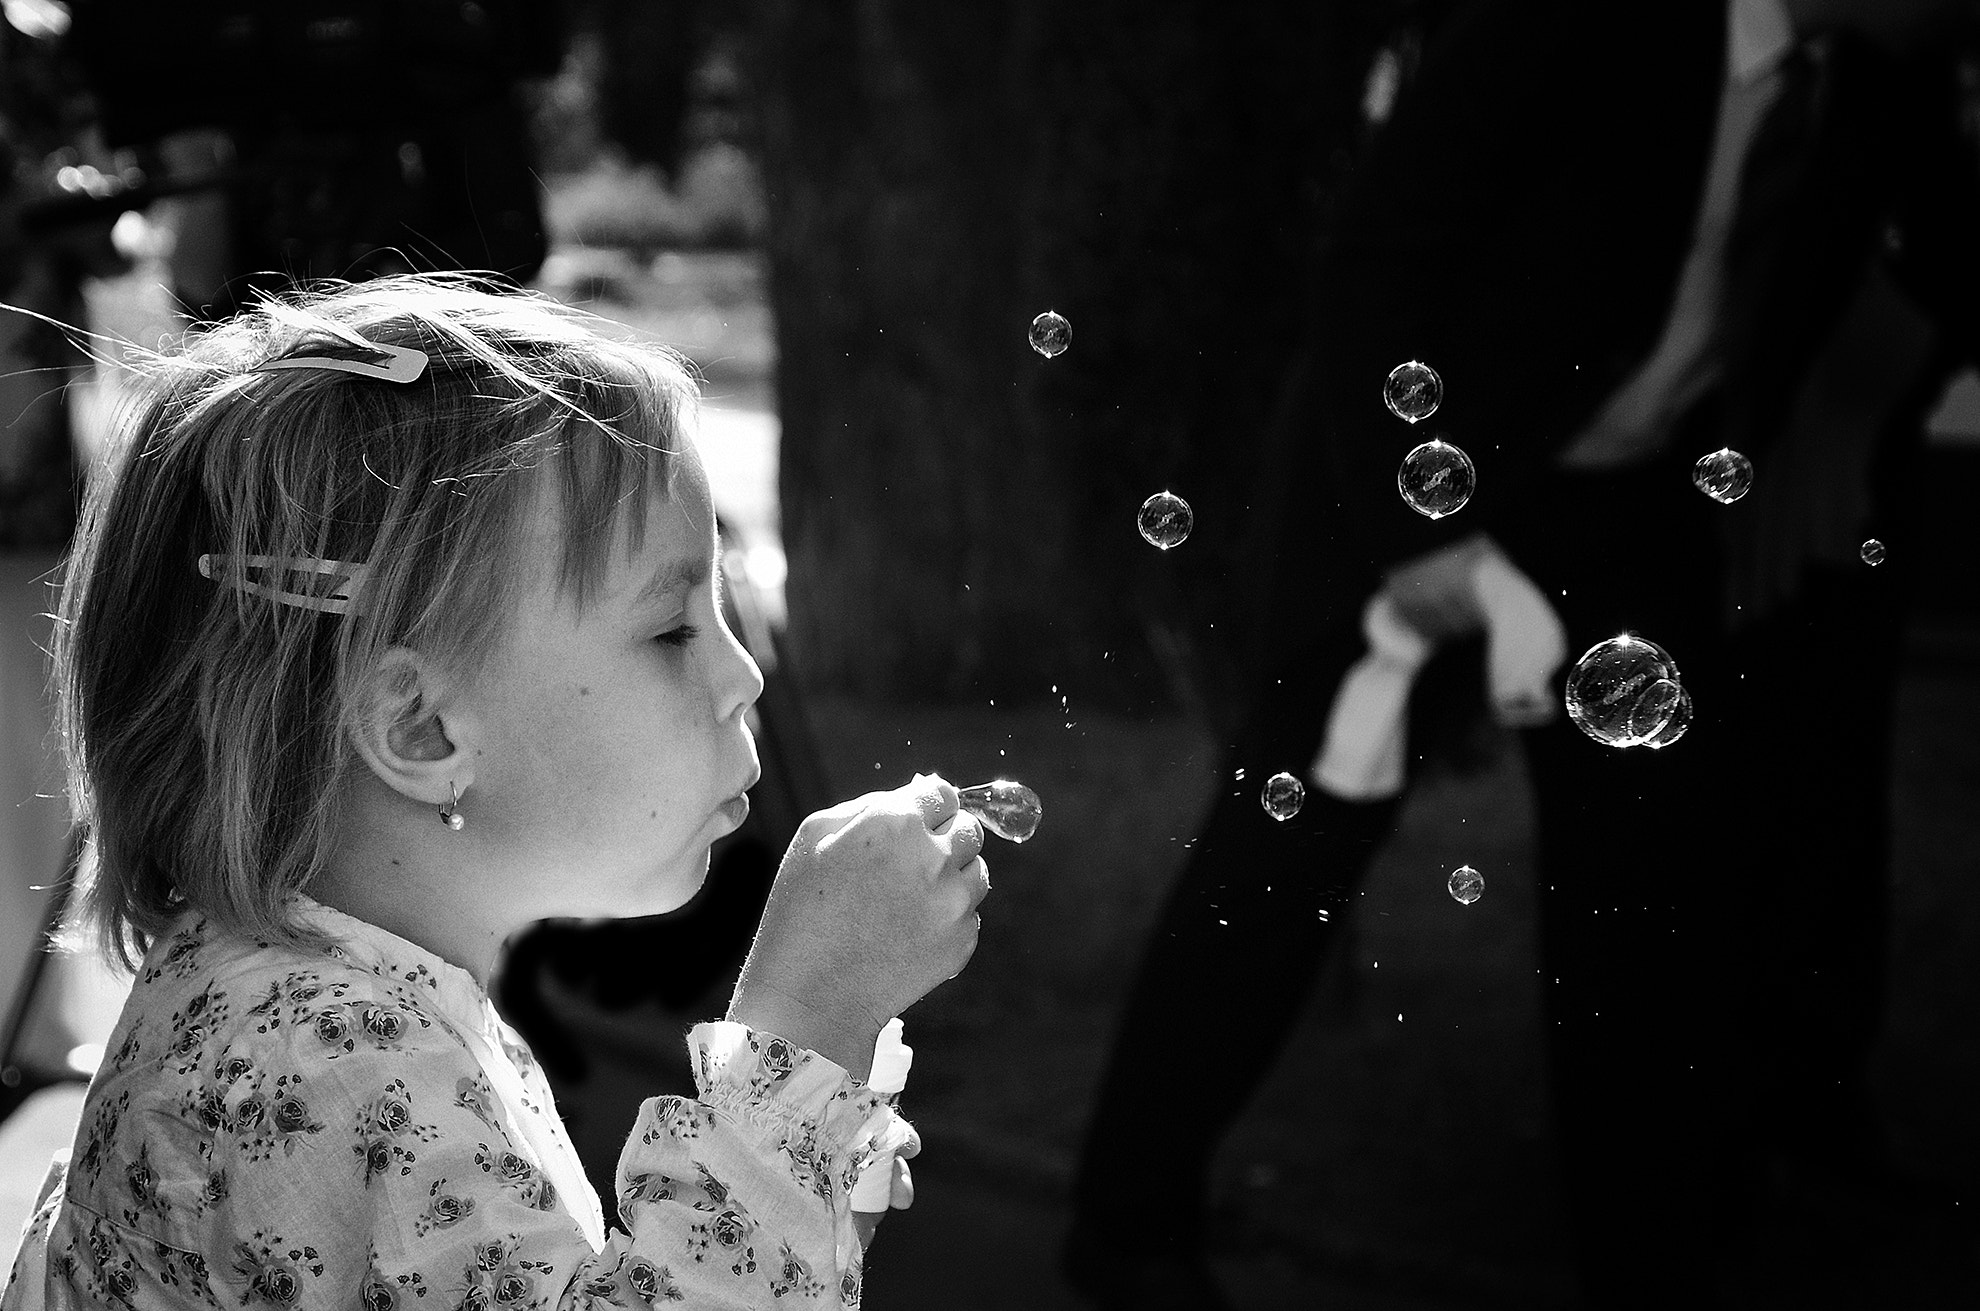 Photograph Bubbles by Martin Hricko on 500px